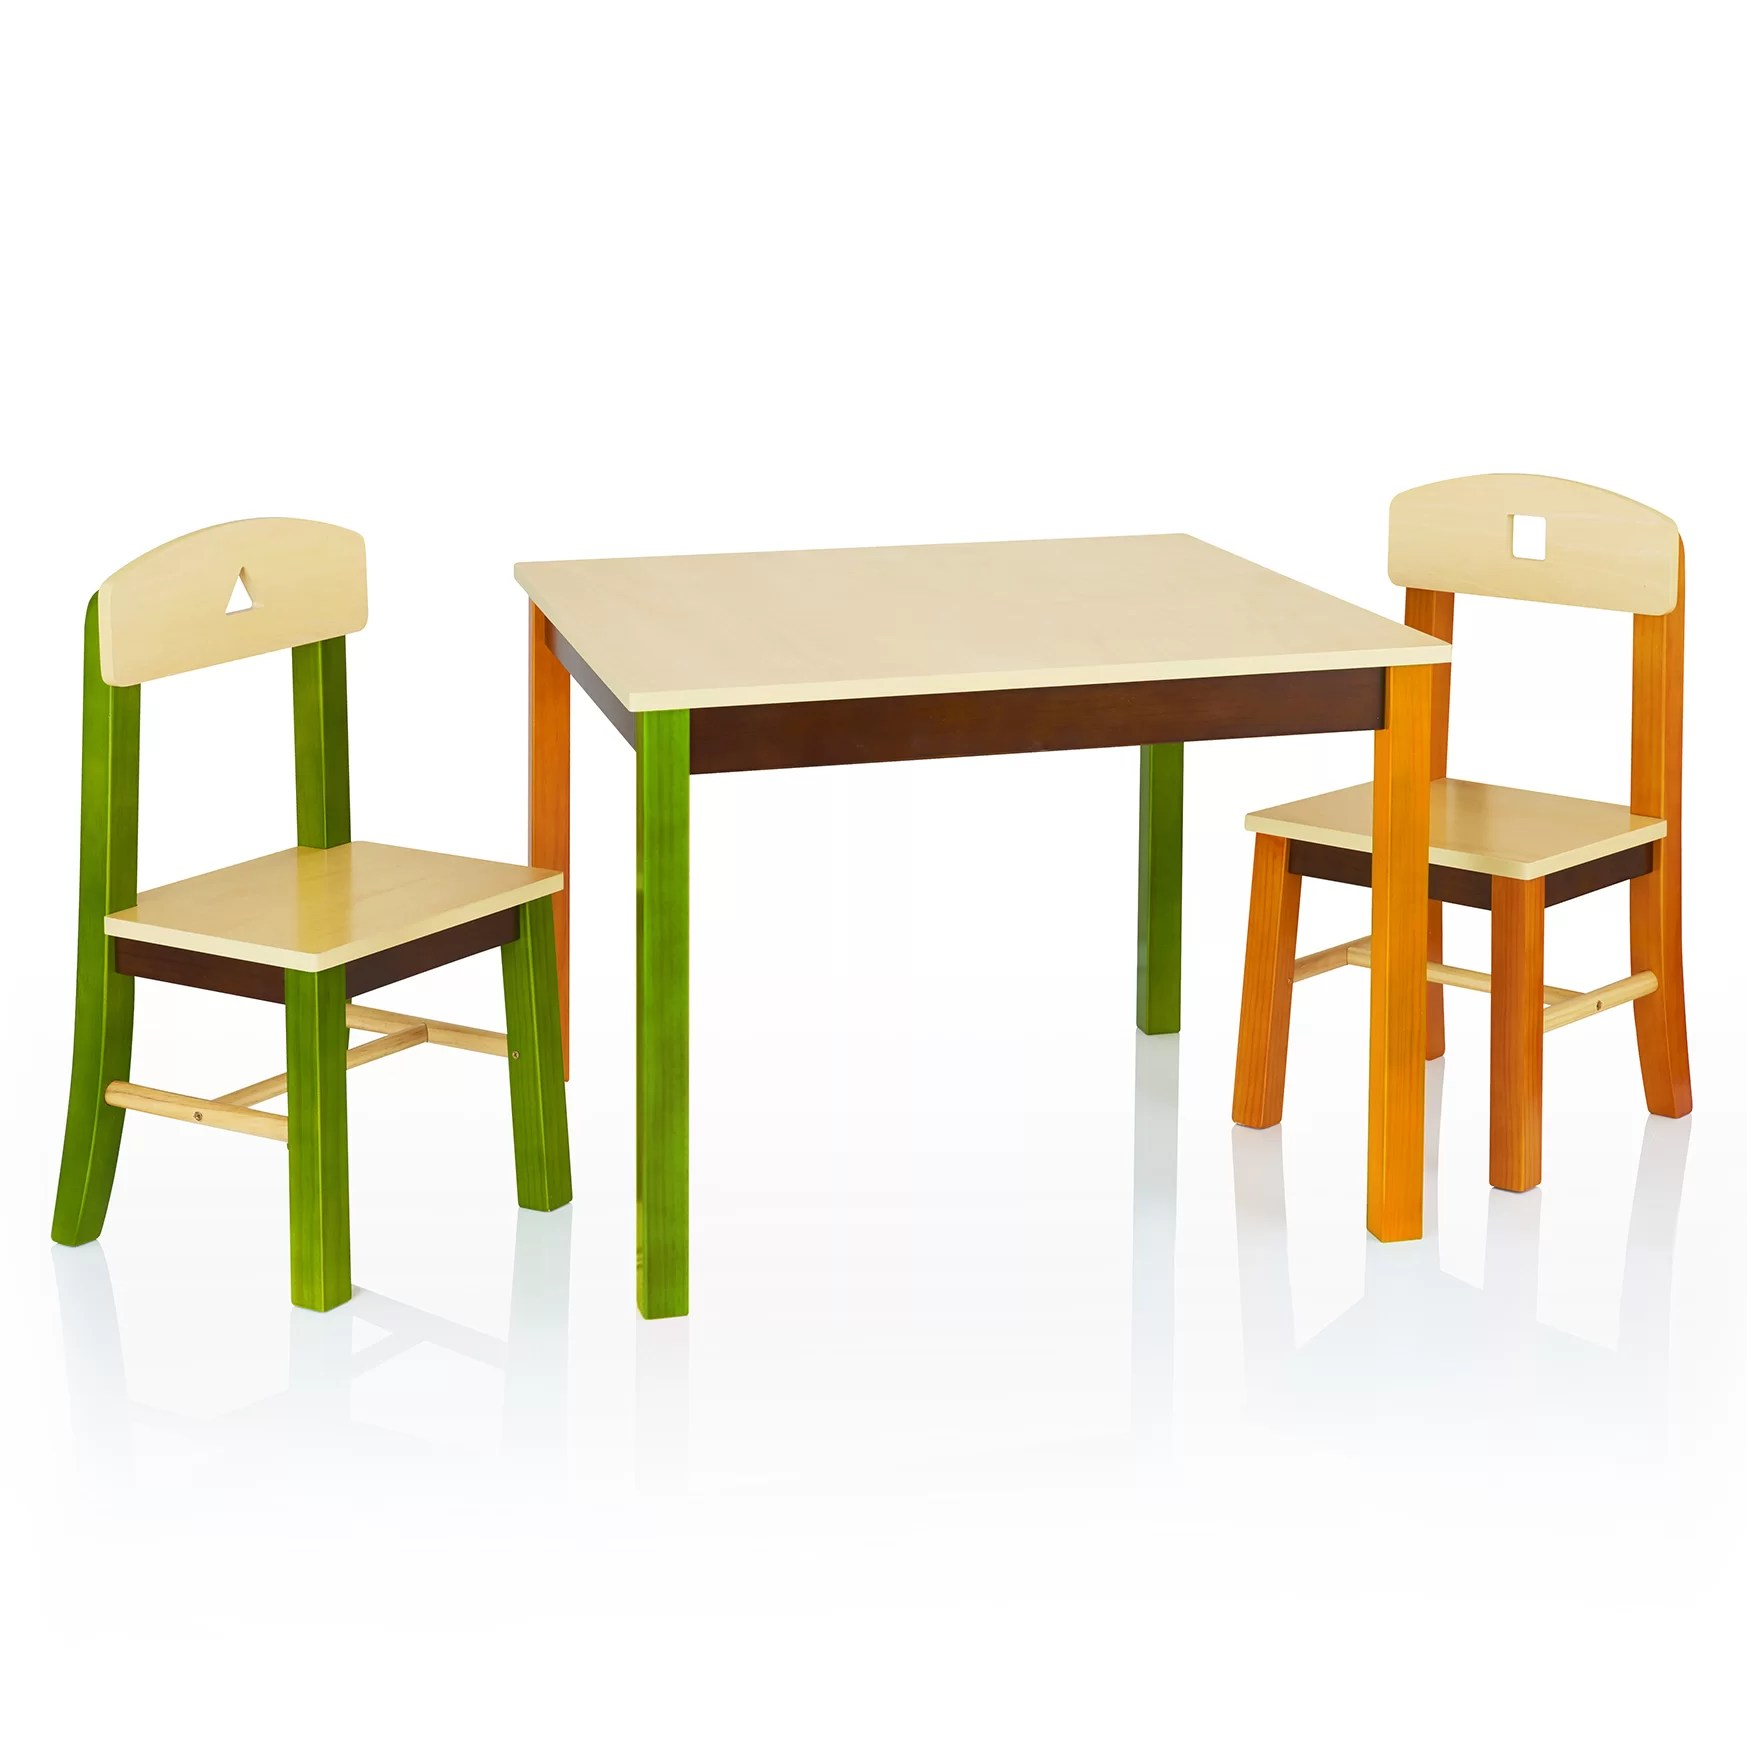 Table And Chairs Set Guidecraft See And Store Kids 3 Piece Rectangle Table And